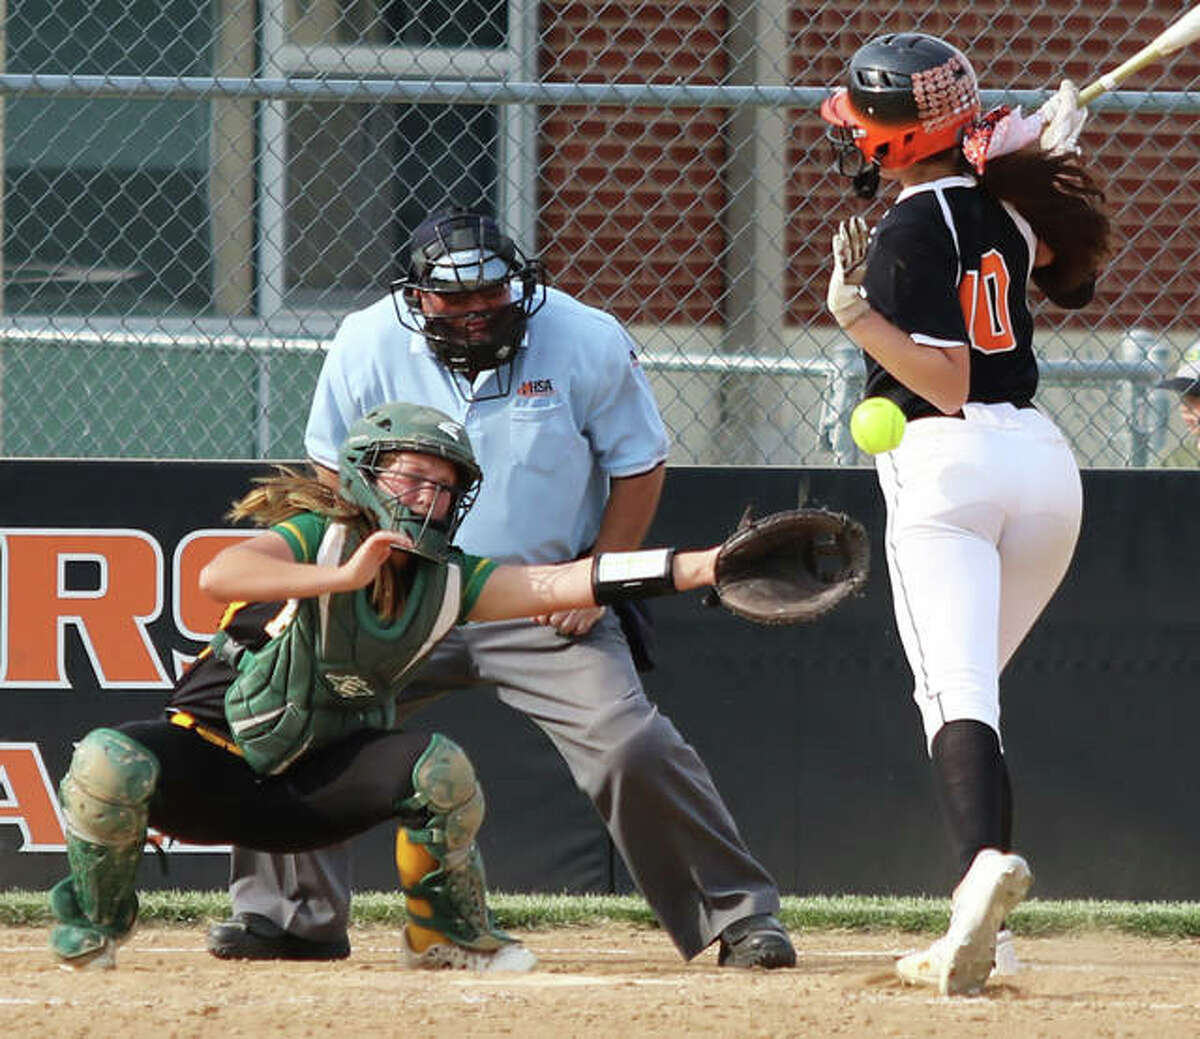 Gillespie's Keaton Link (right) can't avoid getting hit in the back by a pitch in the sixth inning while Southwestern catcher Abby McDonald reaches for the pitch that won't reach her glove Monday in a SCC softball game in Gillespie.